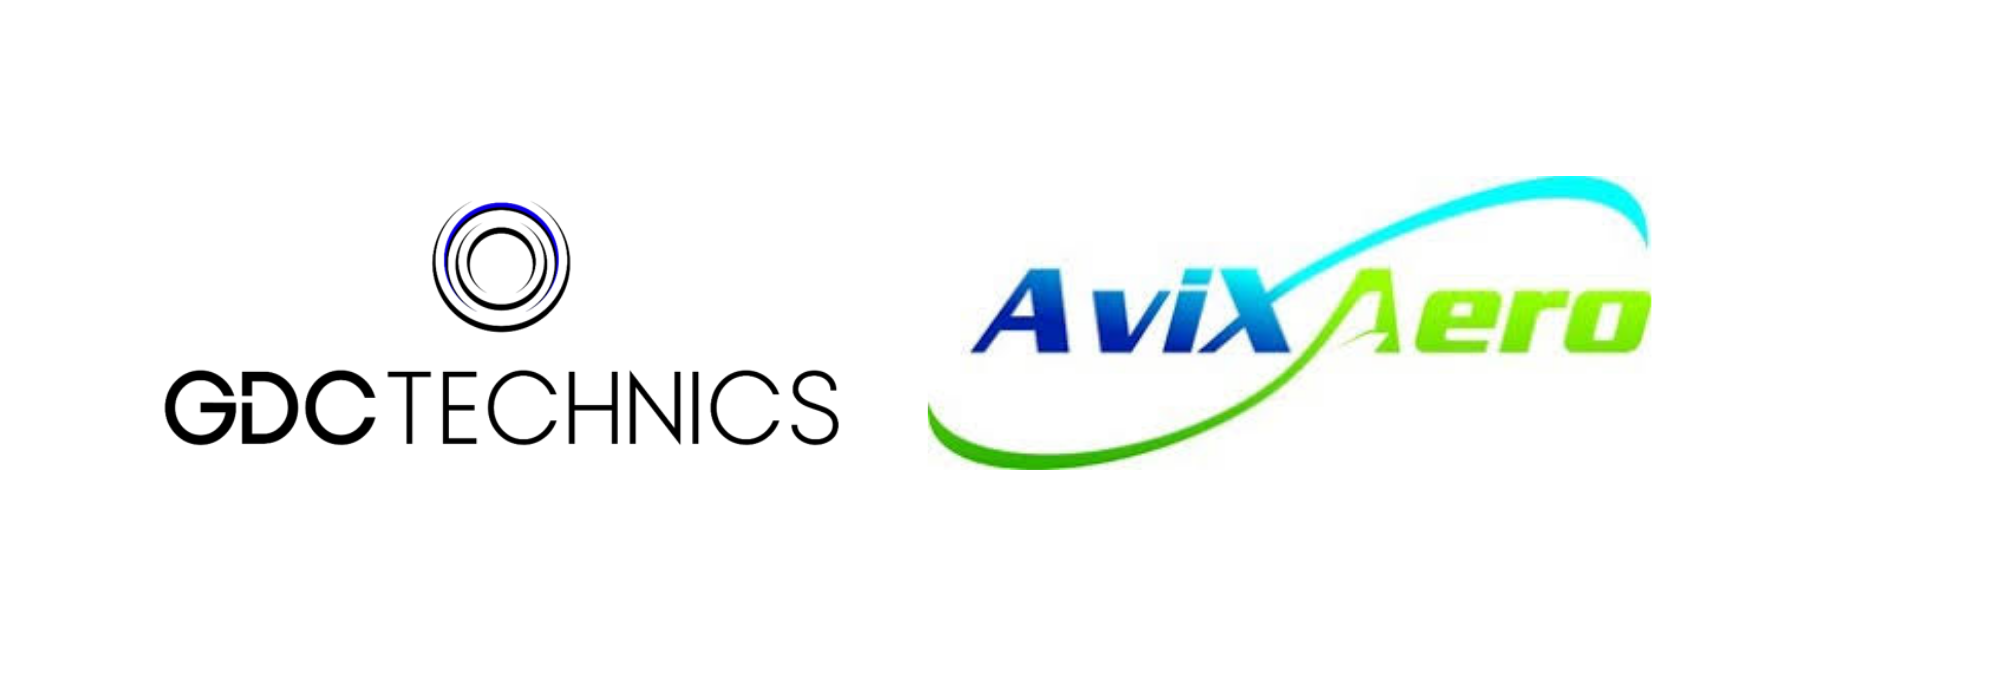 AVIX AERO AND GDC TECHNICS CONFIRM FAA STC FOR BOEING 777 LANDING GEAR STRUT DATA COLLECTION SYSTEM, WEIGHT ON WHEELS